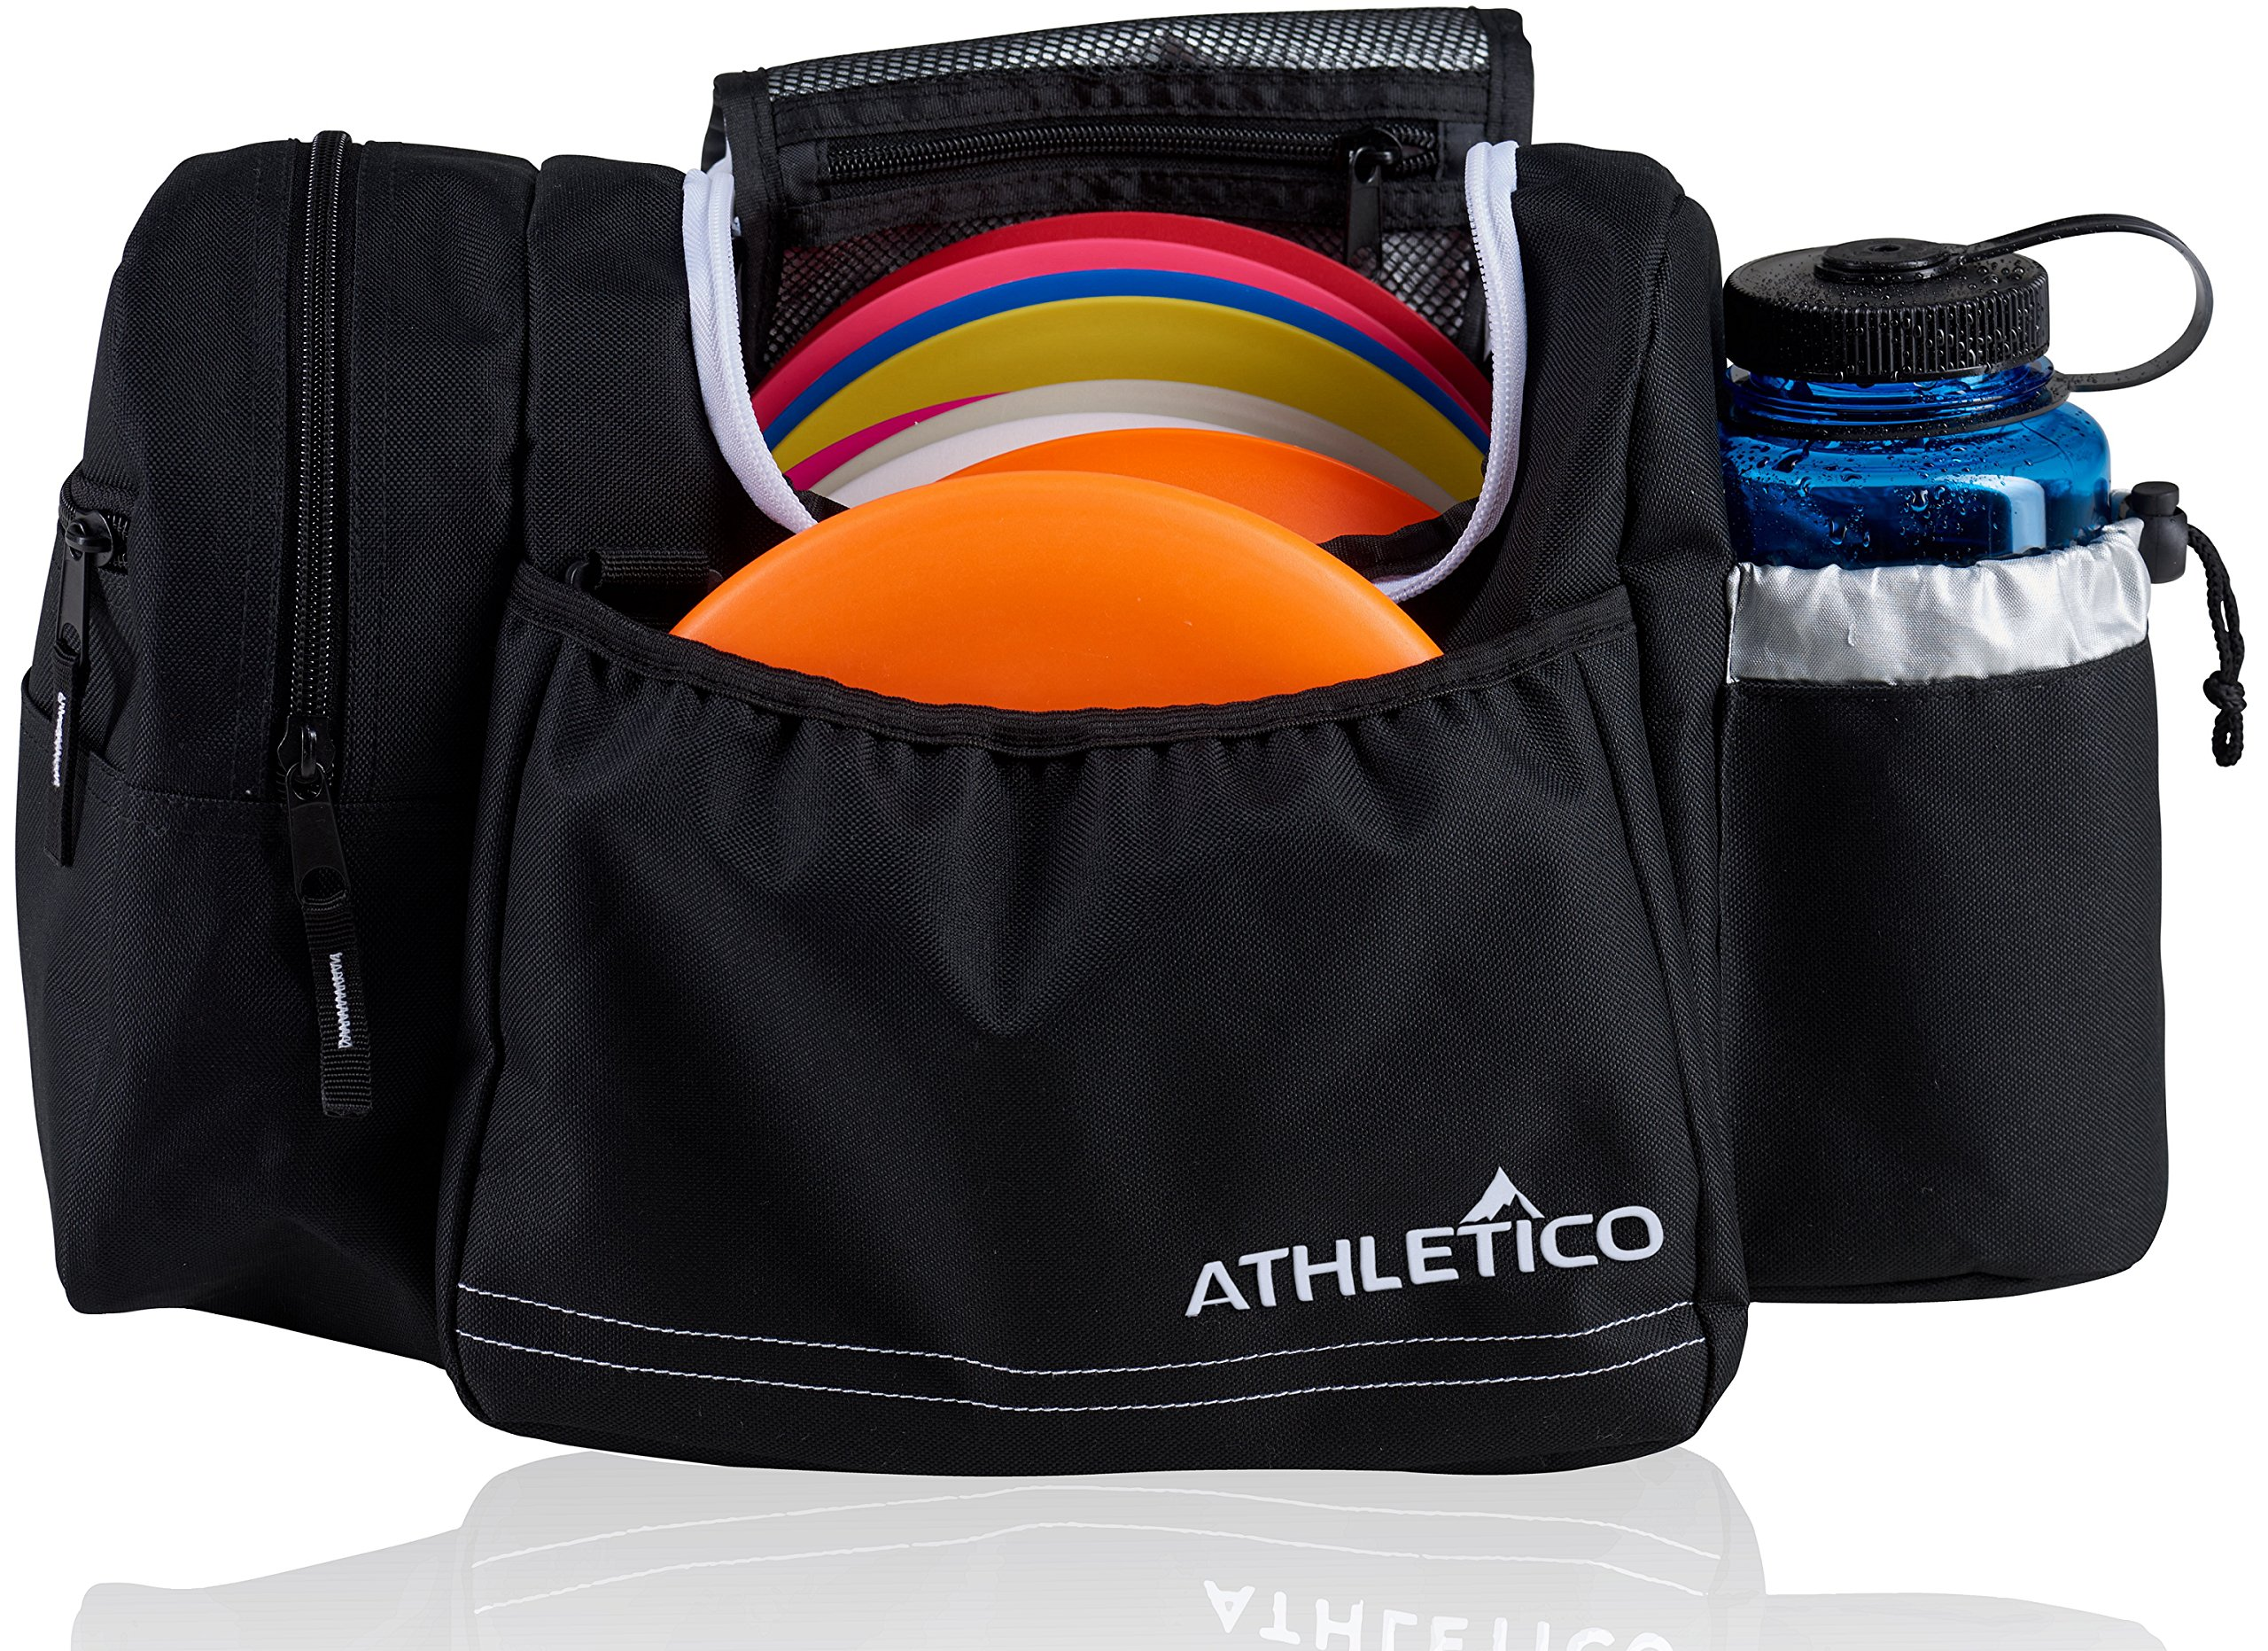 Athletico Disc Golf Bag - Tote Bag for Frisbee Golf - Holds 10-14 Discs, Water Bottle, and Accessories (Black) by Athletico